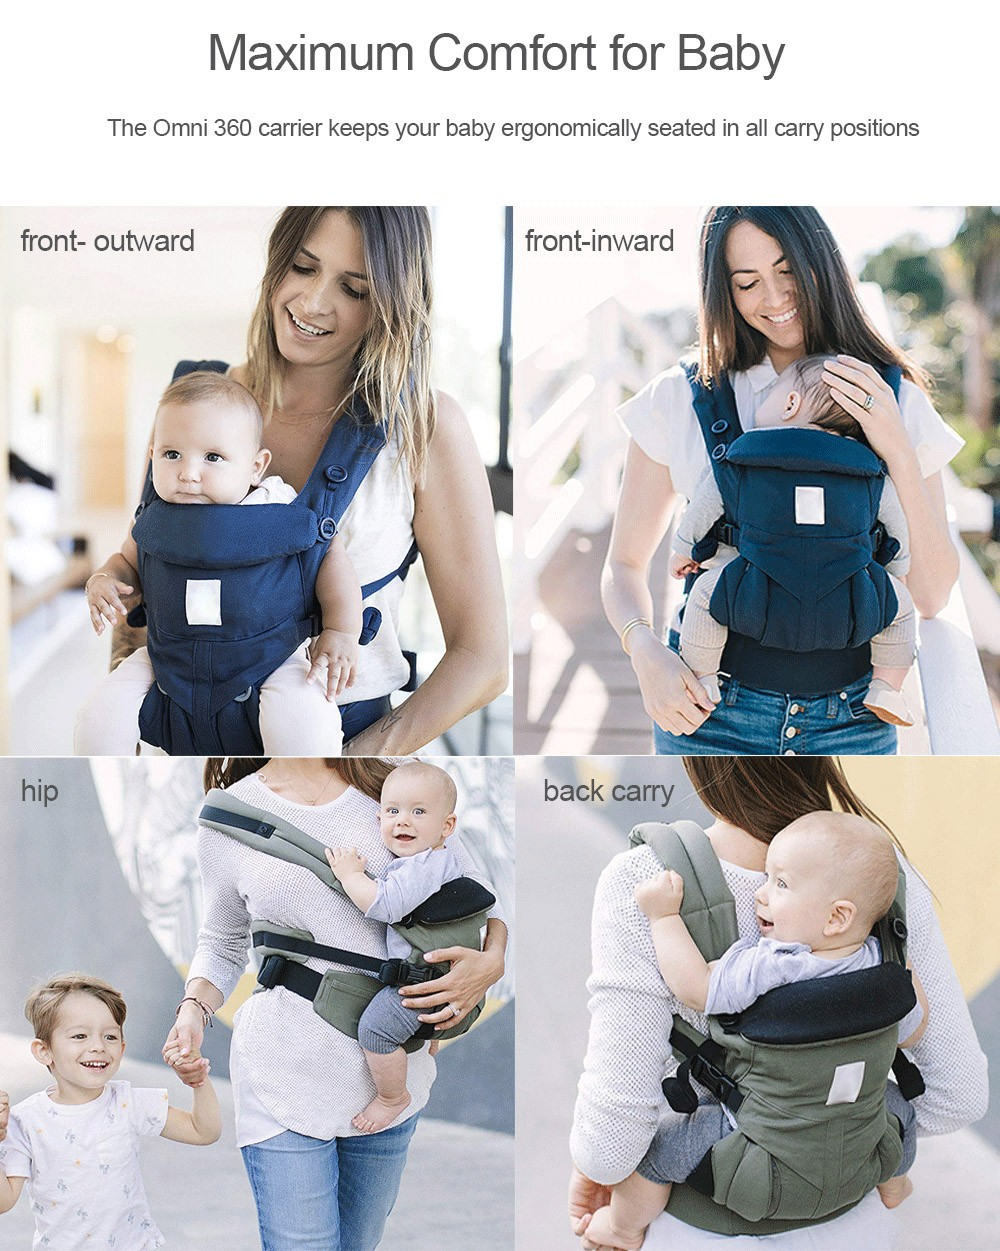 efc4a3f046f Omni 360 All-in-one Ergonomic Baby Carrier Sling for Newborn Toddler-  Platinum